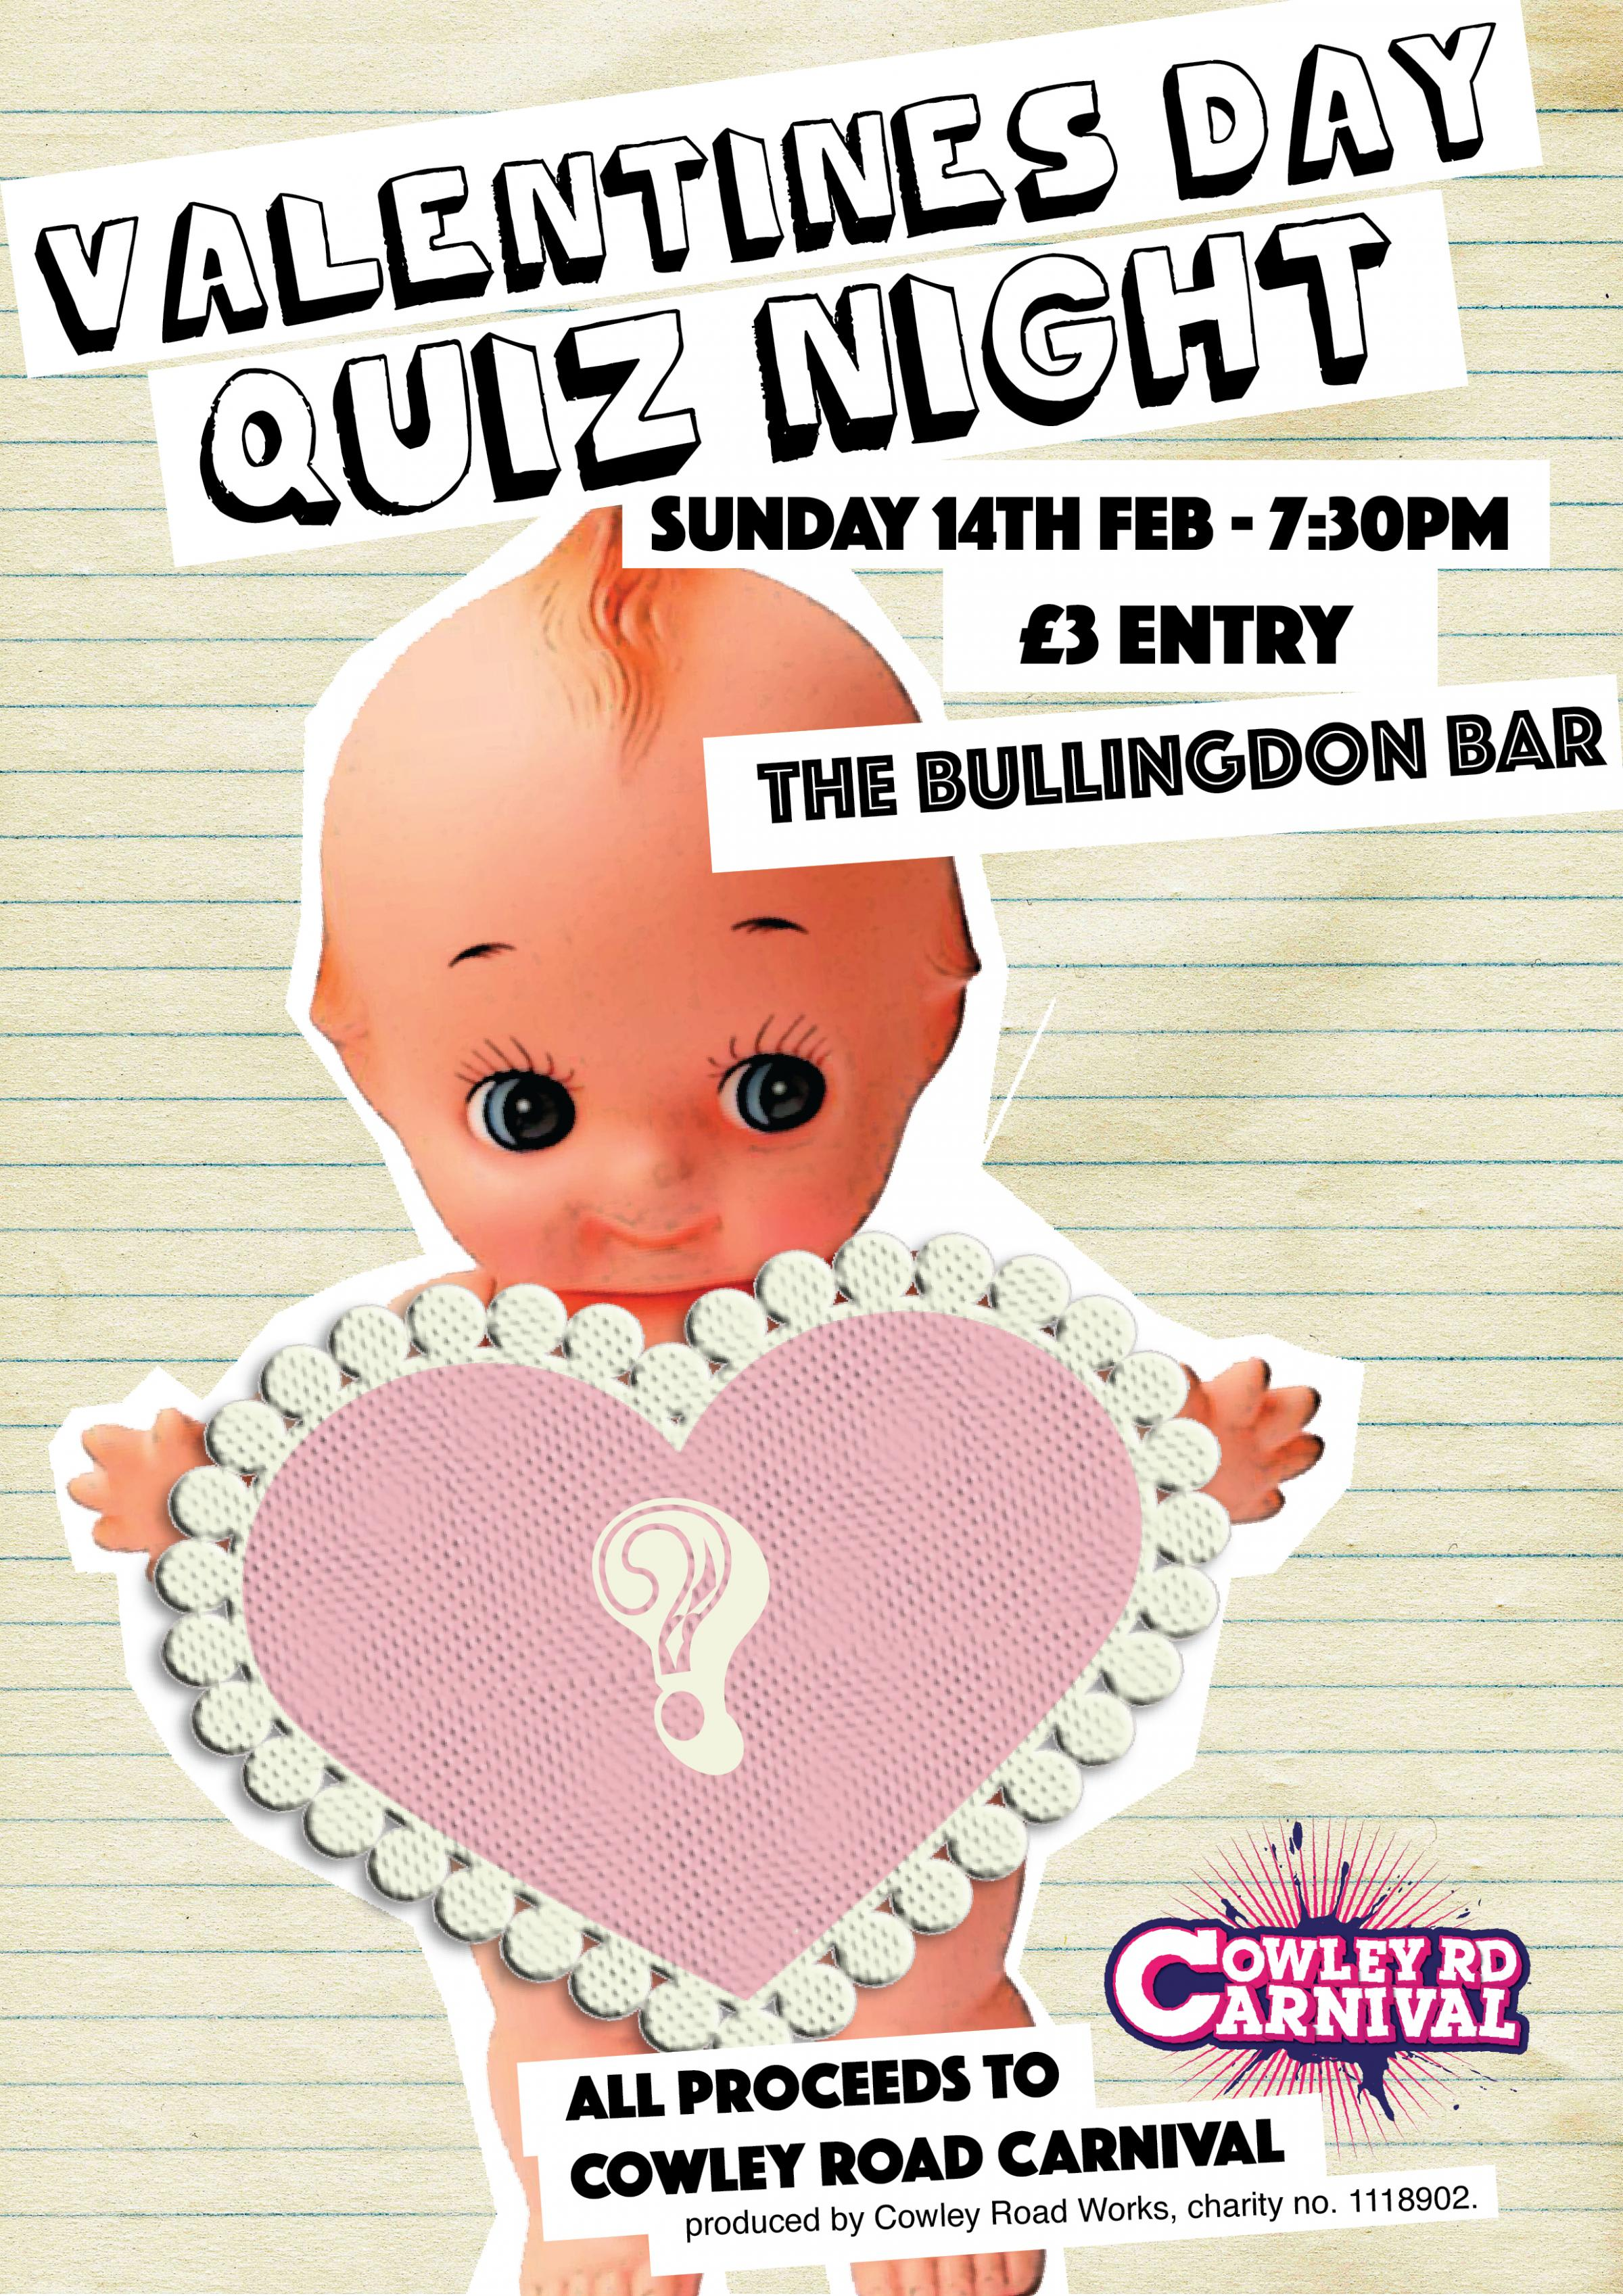 Valentines Quiz Night in aid of Cowley Road Carnival